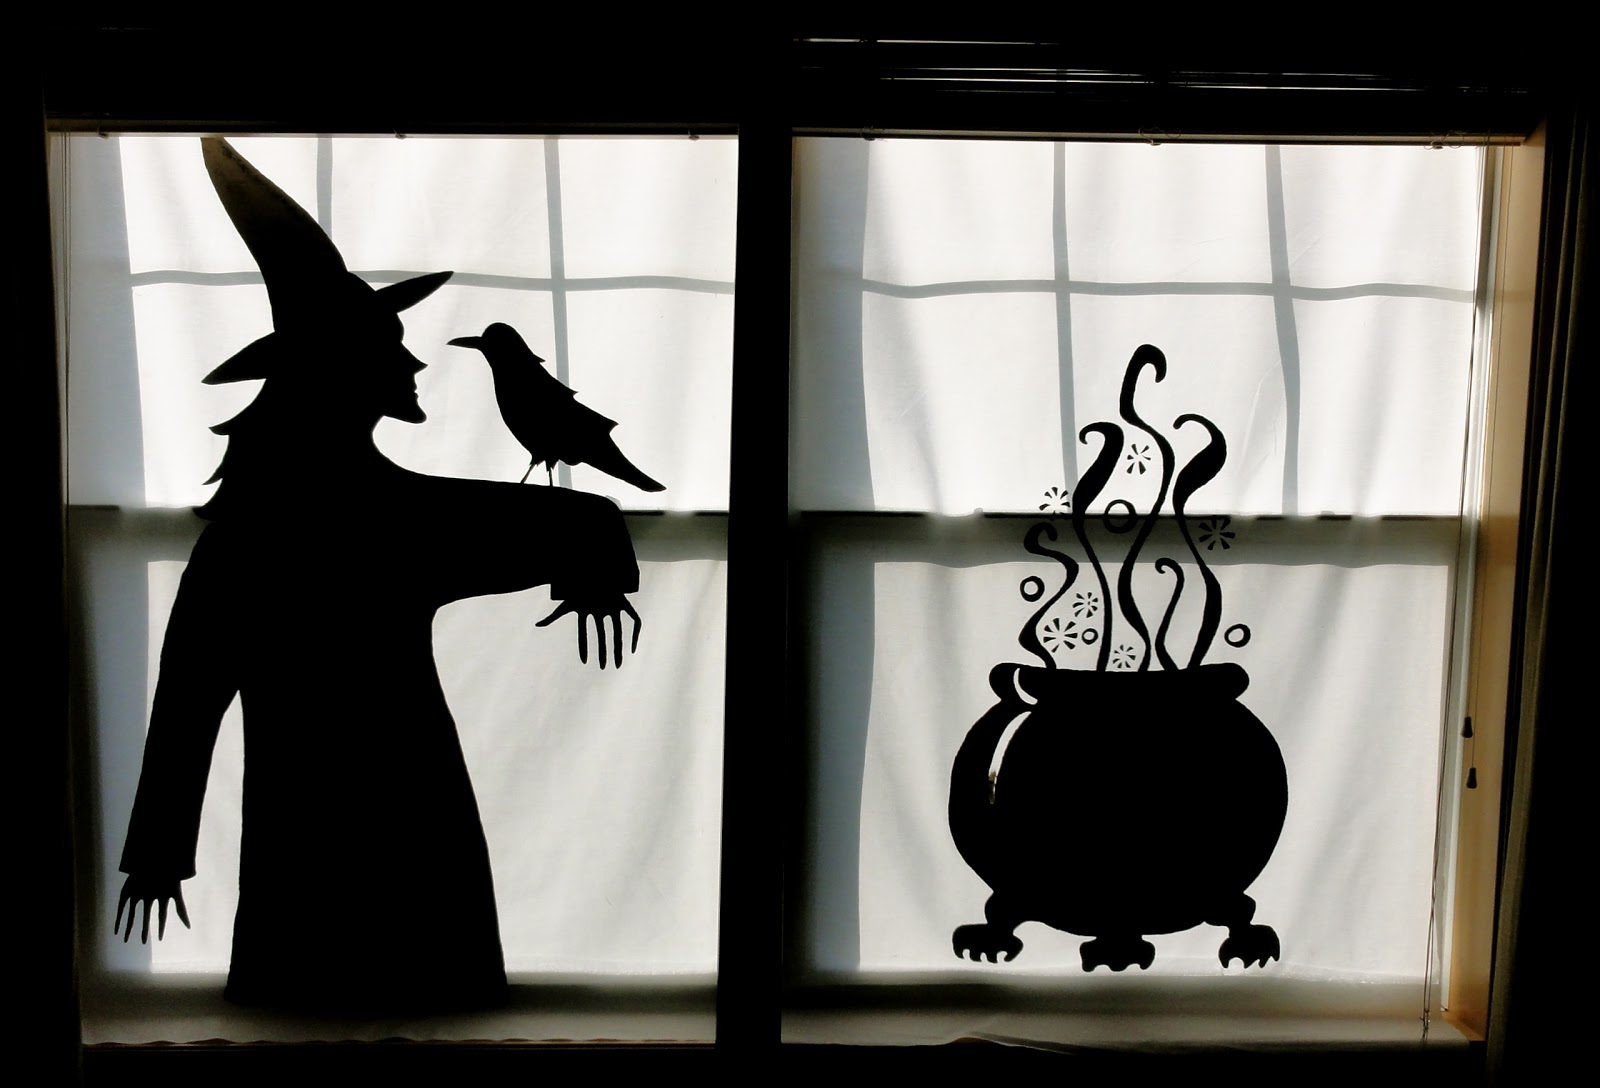 birshykat witch with caldron window silhouette. Black Bedroom Furniture Sets. Home Design Ideas